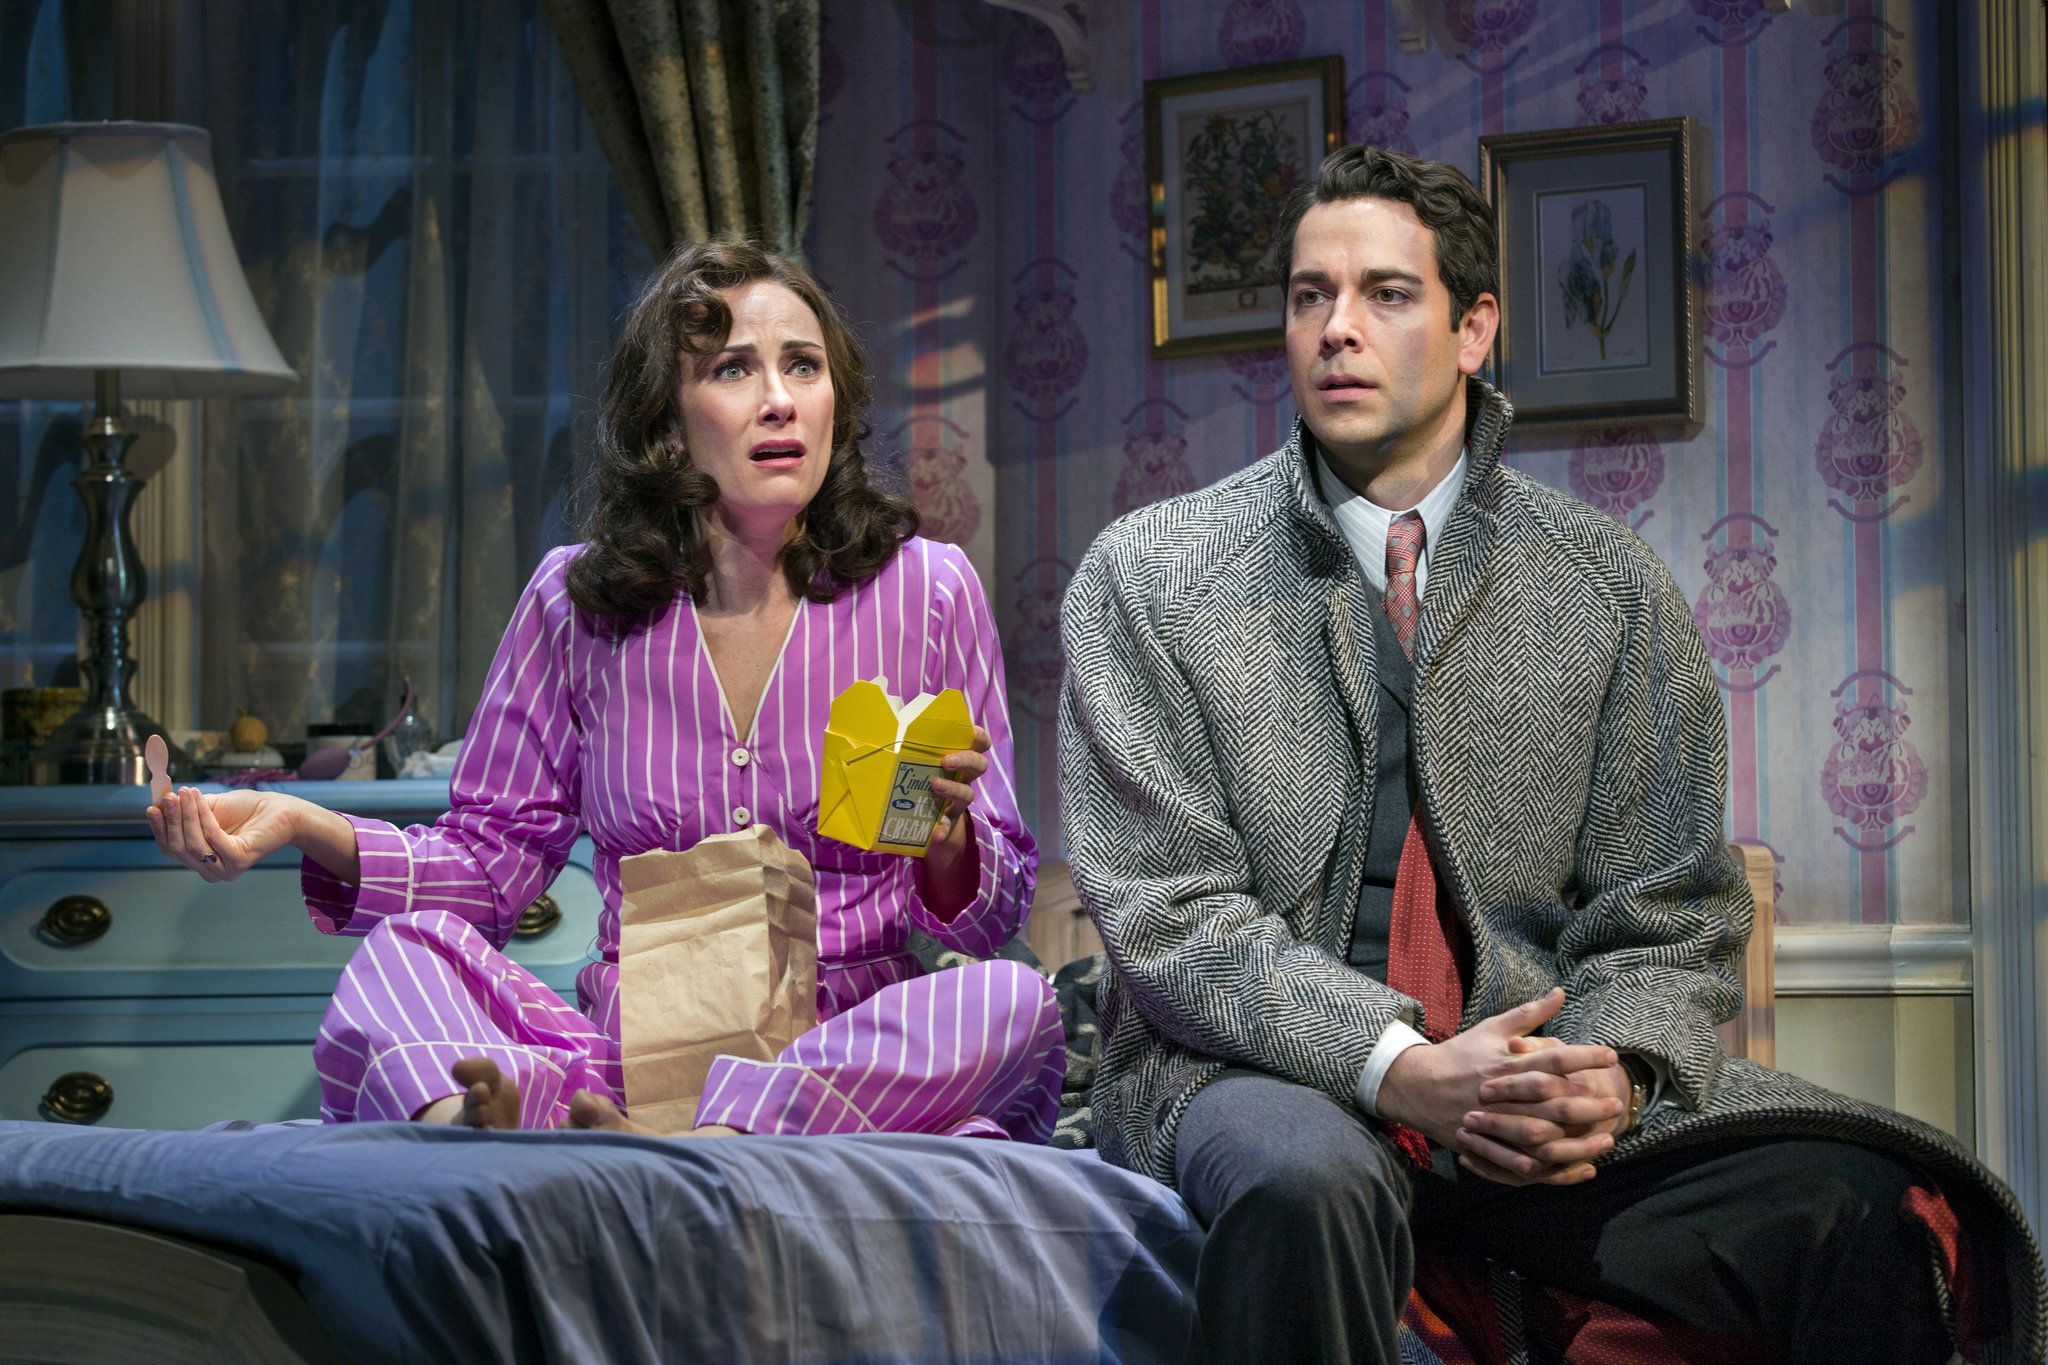 Tony Nominations 2016 (With images) | Tony nominations, She loves ...